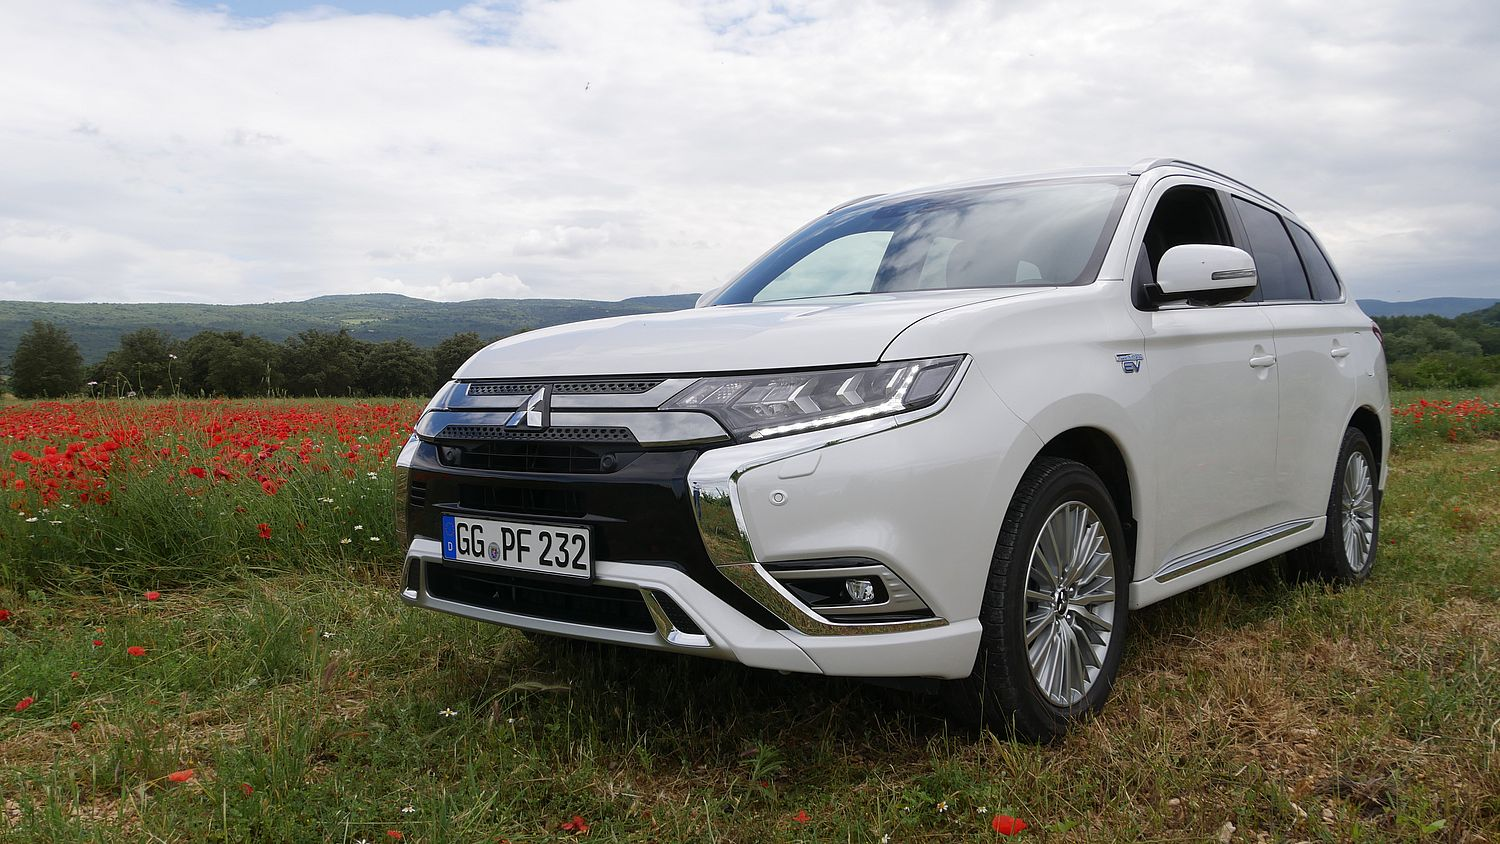 essai mitsubishi outlander phev 2019 un suv hybride rechargeable surprenant. Black Bedroom Furniture Sets. Home Design Ideas